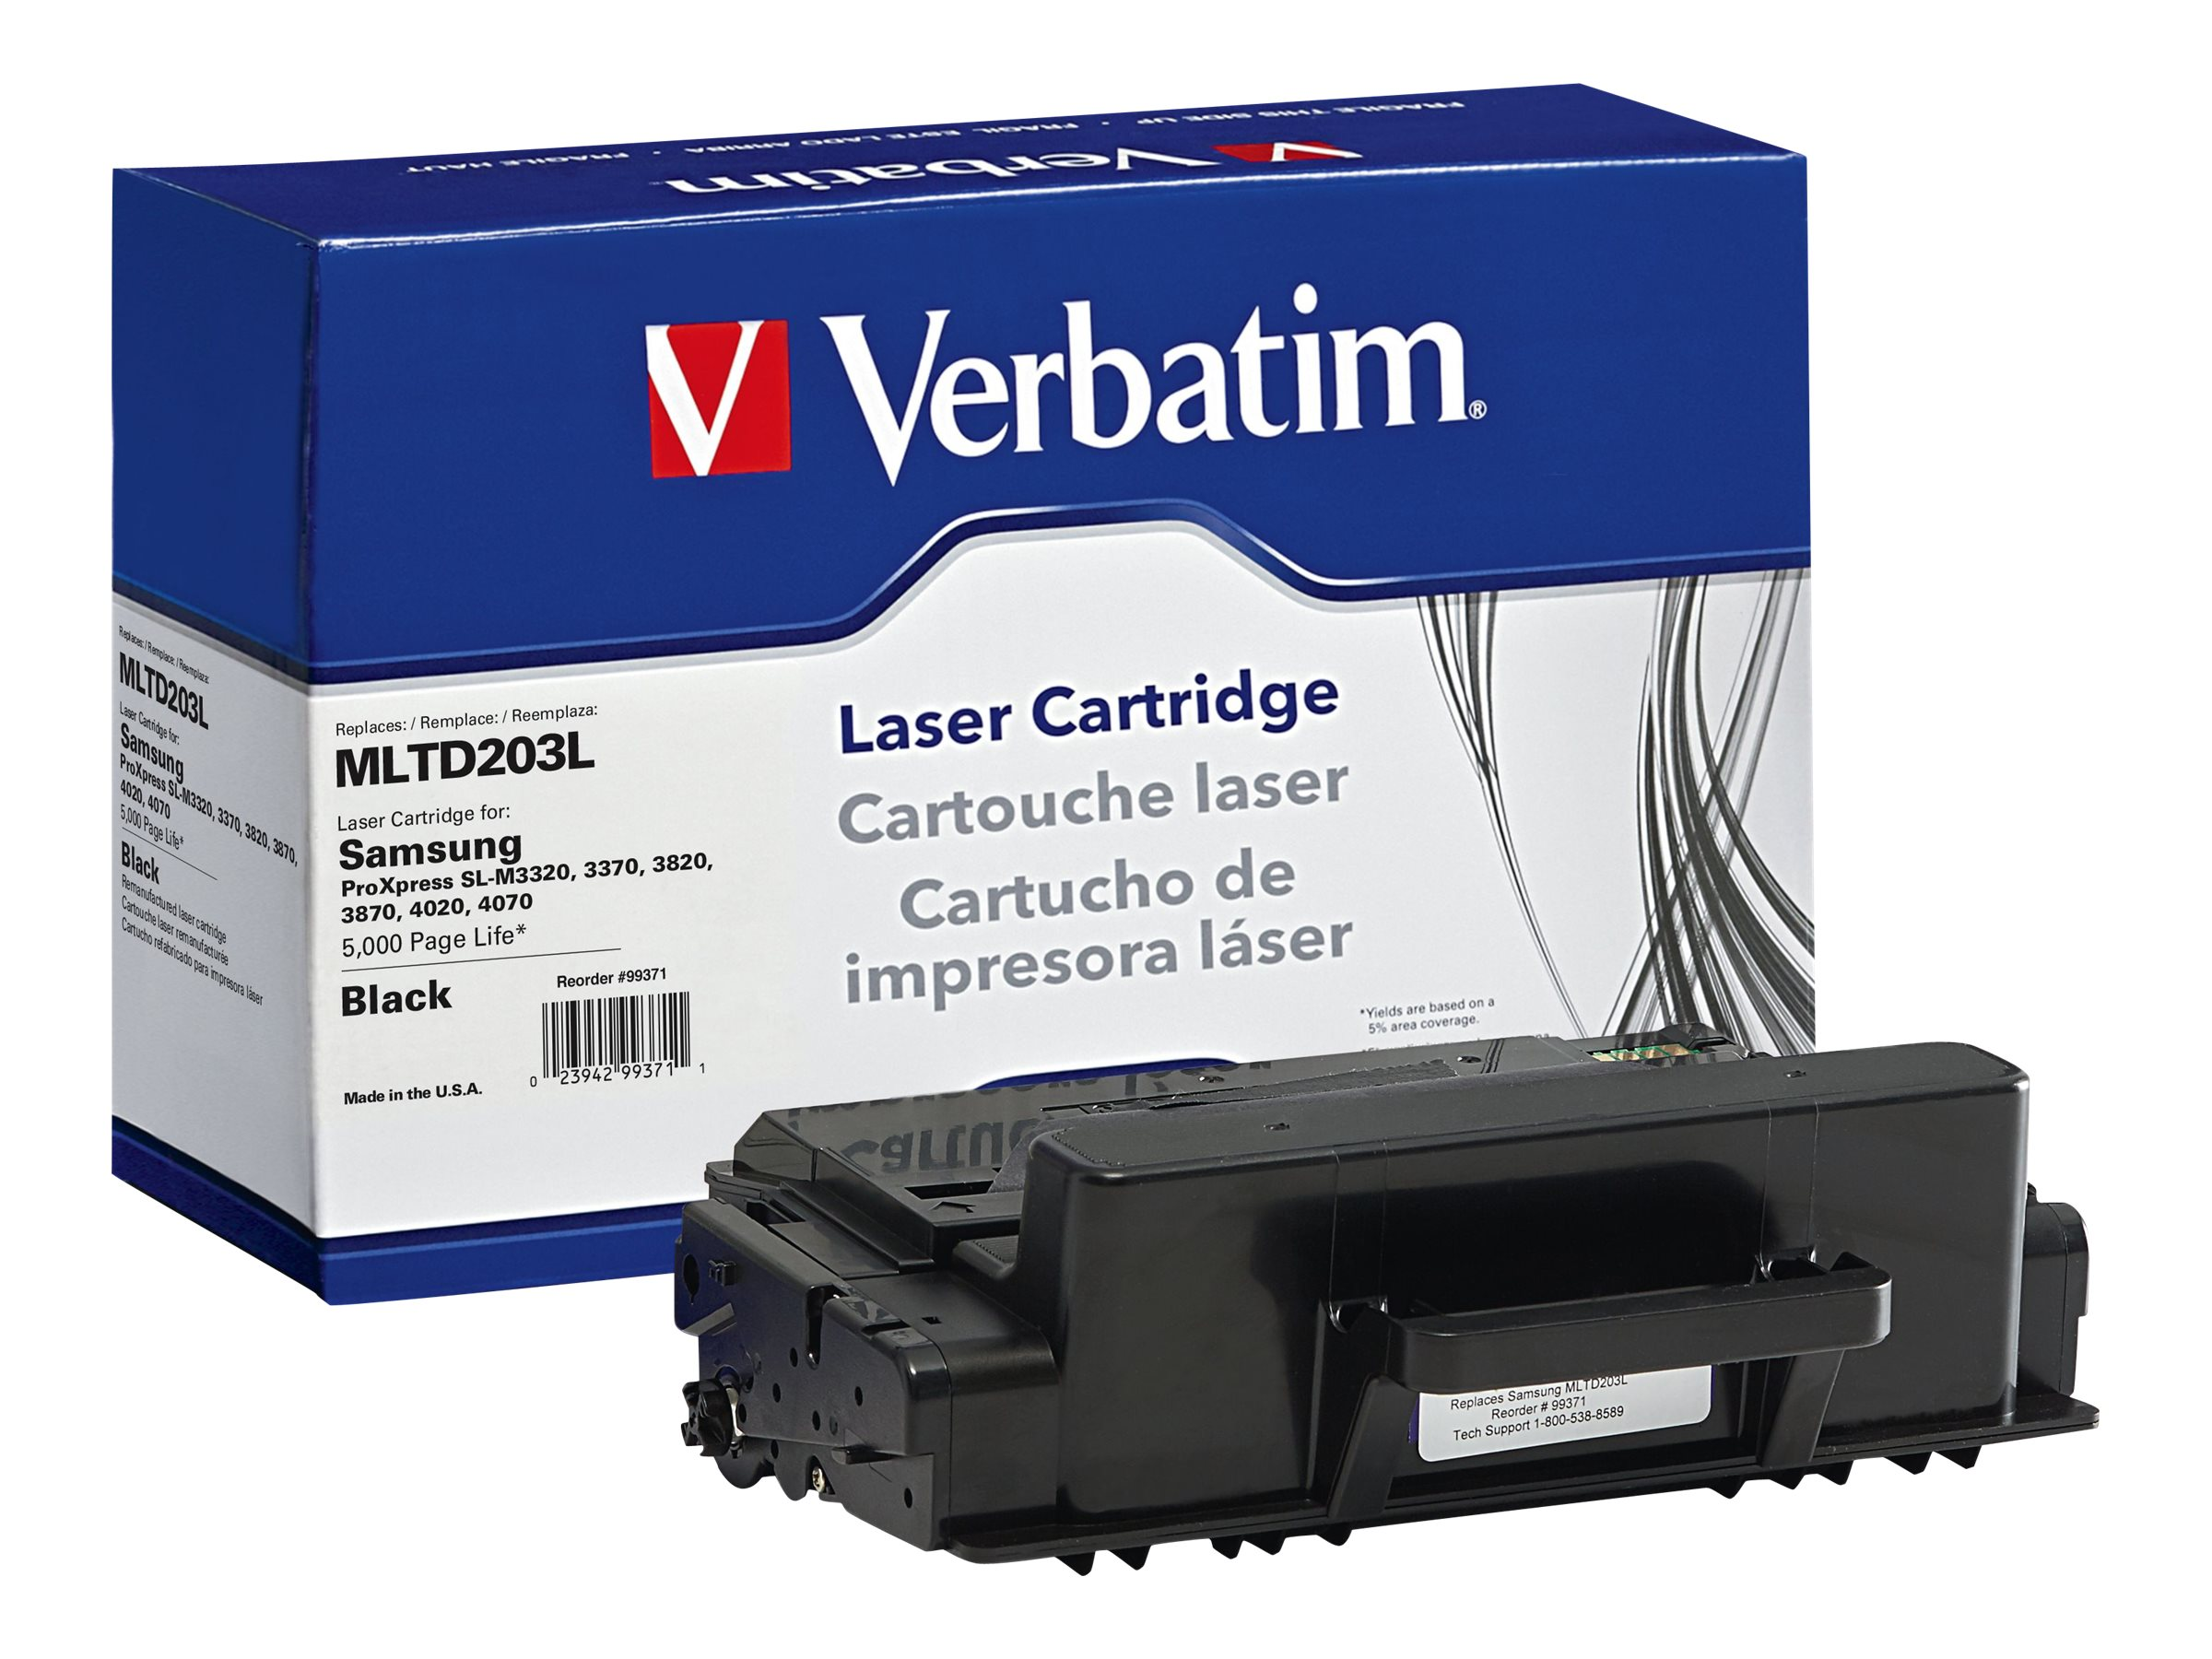 Verbatim MLTD203L Toner Cartridge for Samsung